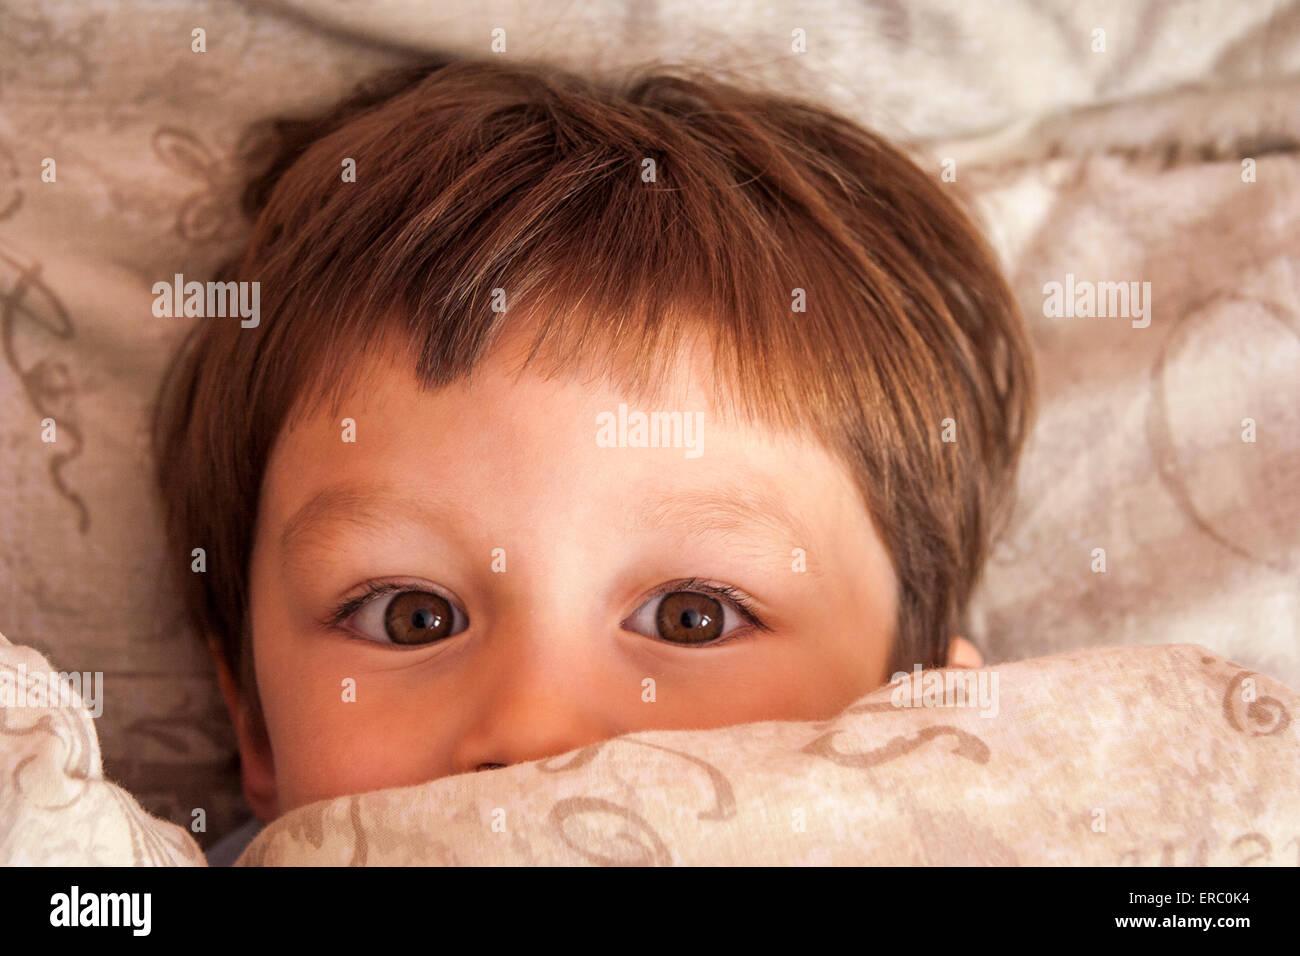 Image result for kids, indian boy aged 3 and indian girl aged5 waking up from bed pictures